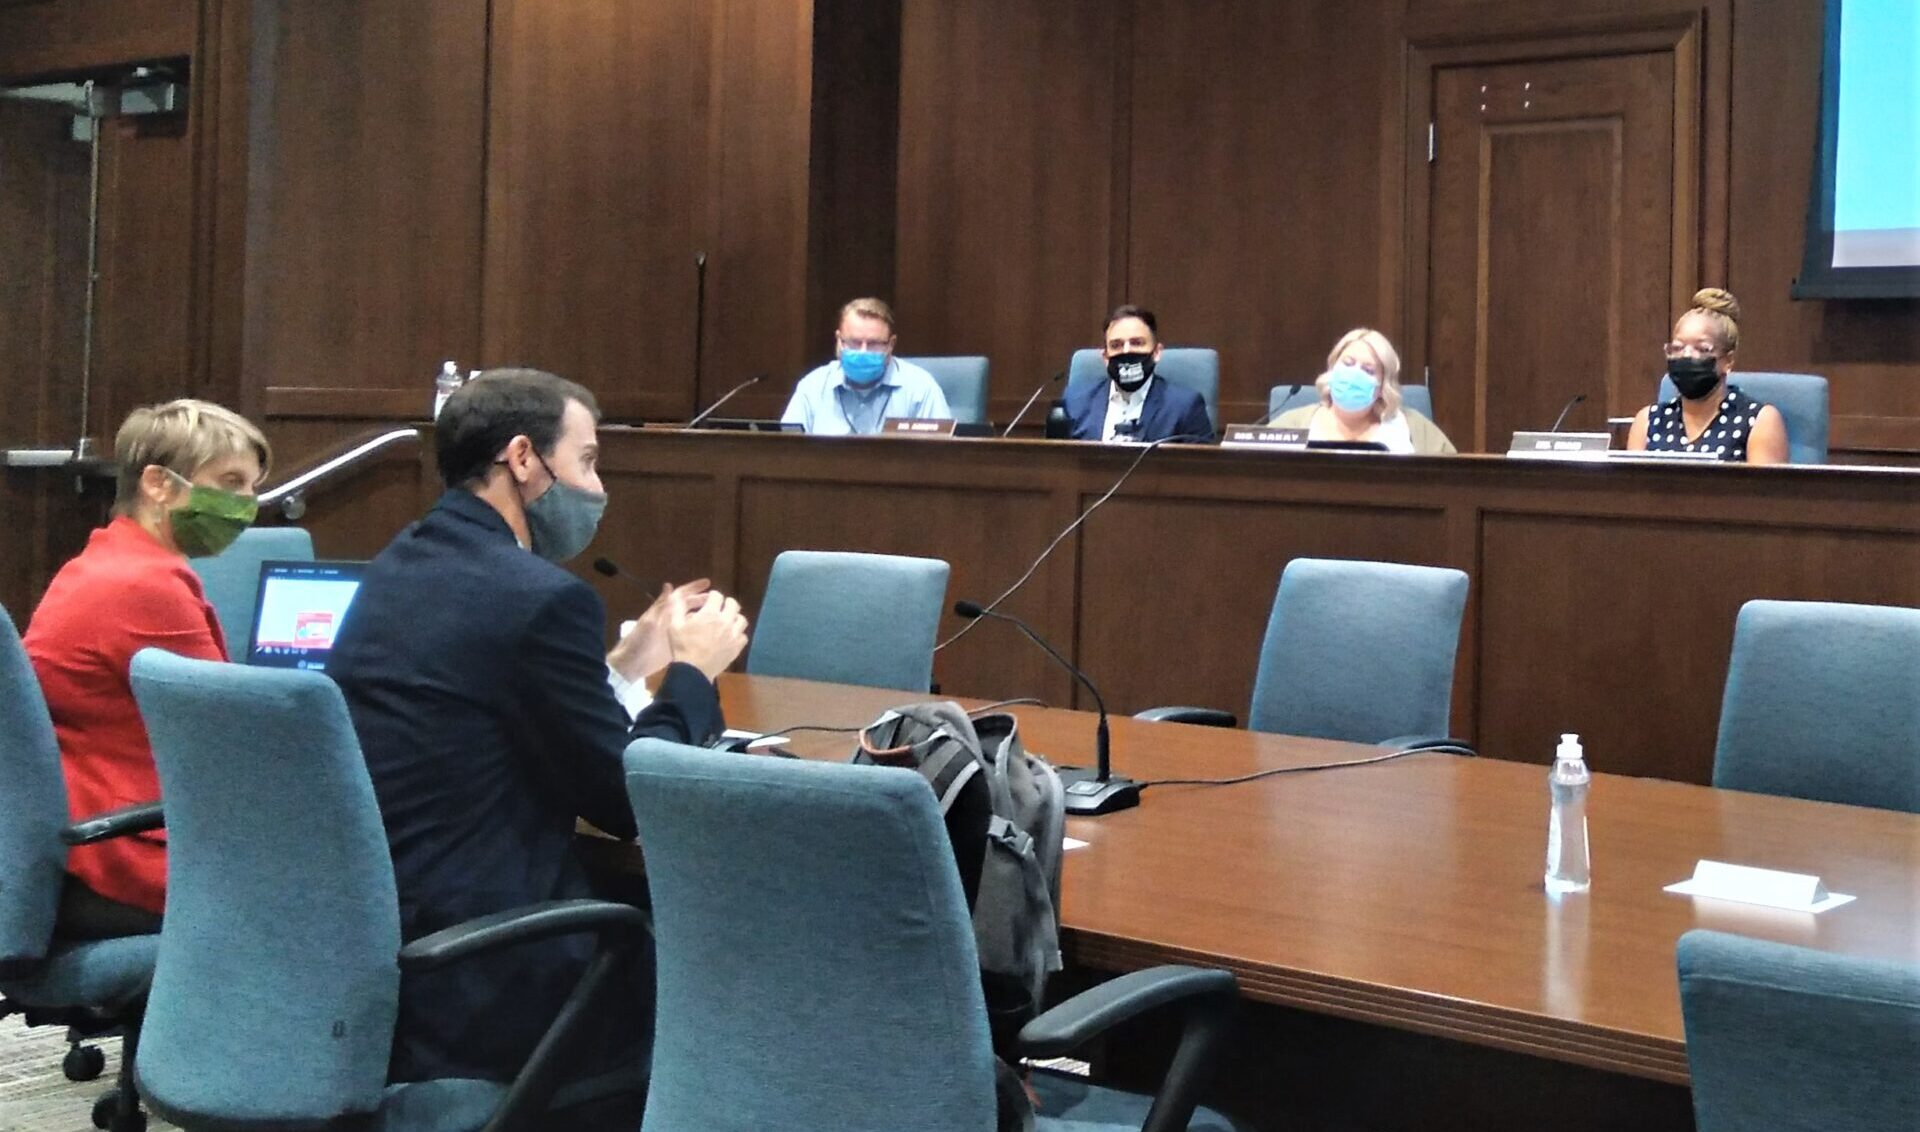 From left, Deputy Director Rebecca Geiser and Director Chris Delfs of the Department of Community Planning & Economic Development discuss proposed changes to Lancaster's lead hazard control ordinance at a City Council committee meeting on Tuesday, Sept. 7, 2021. (Photo: Tim Stuhldreher)